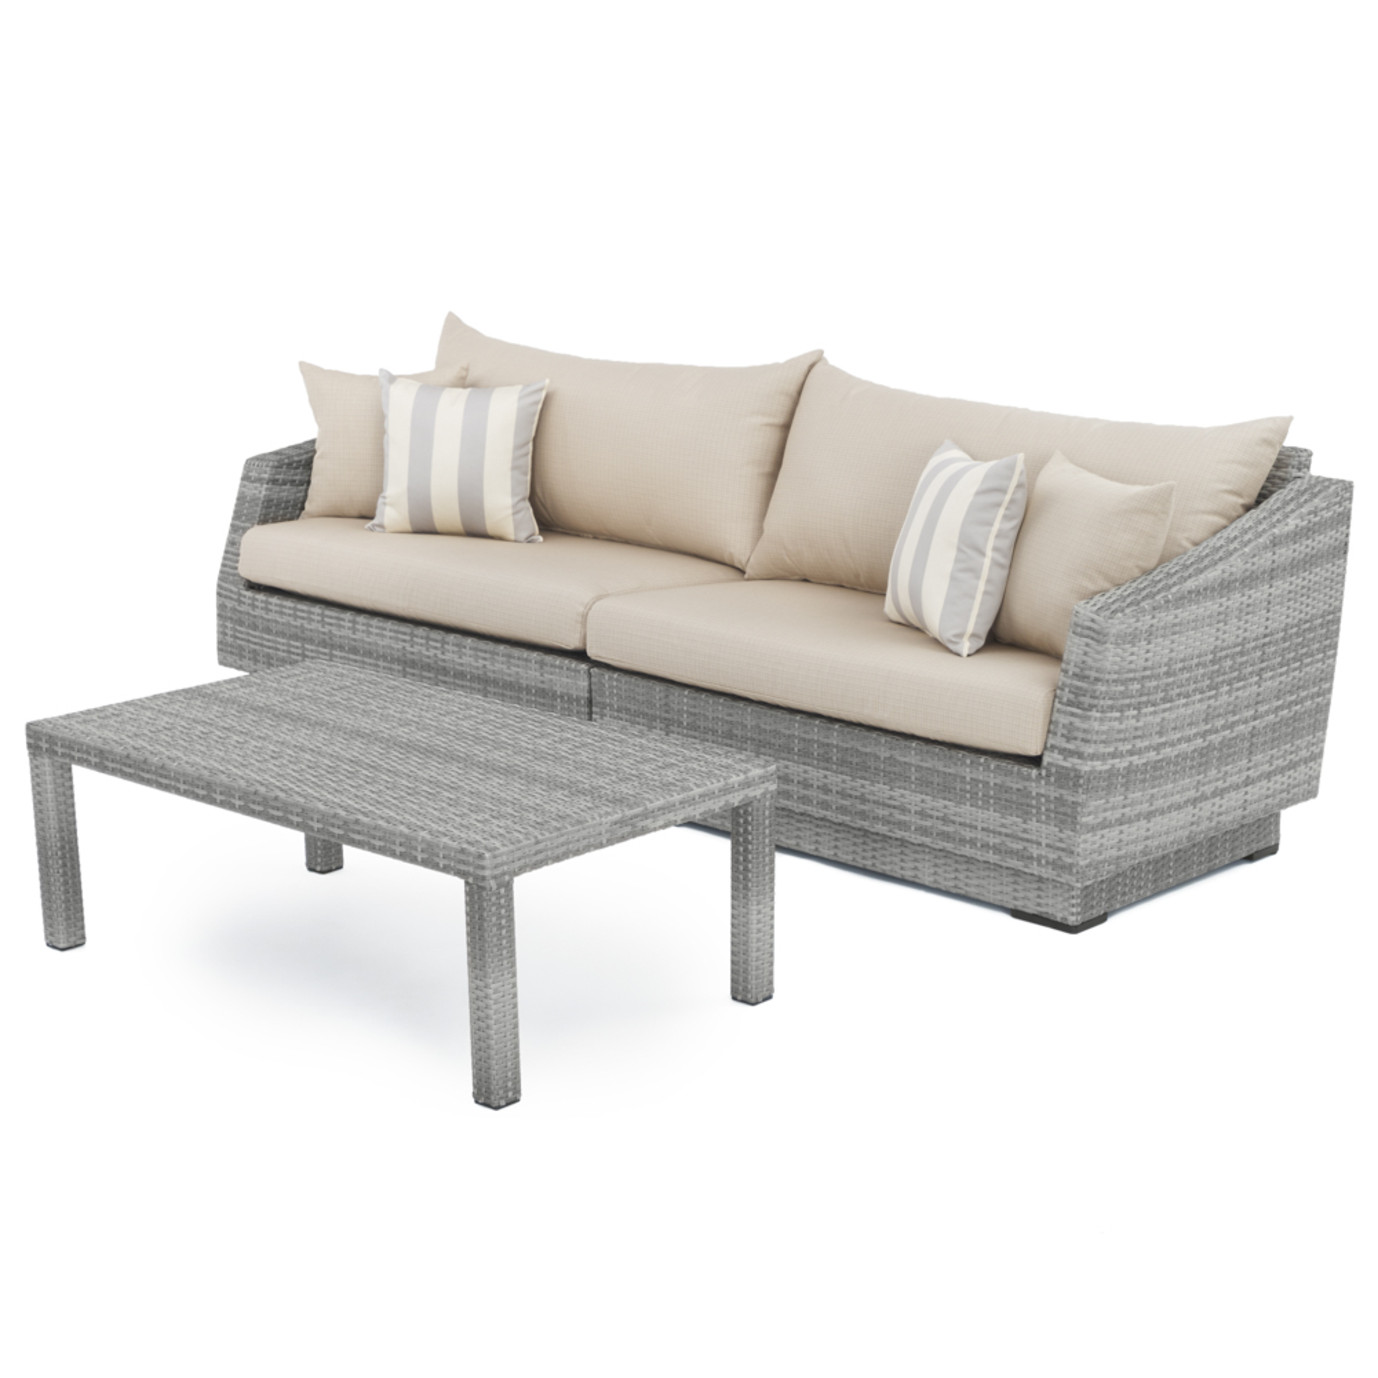 Cannes™ Sofa and Coffee Table - Slate Grey